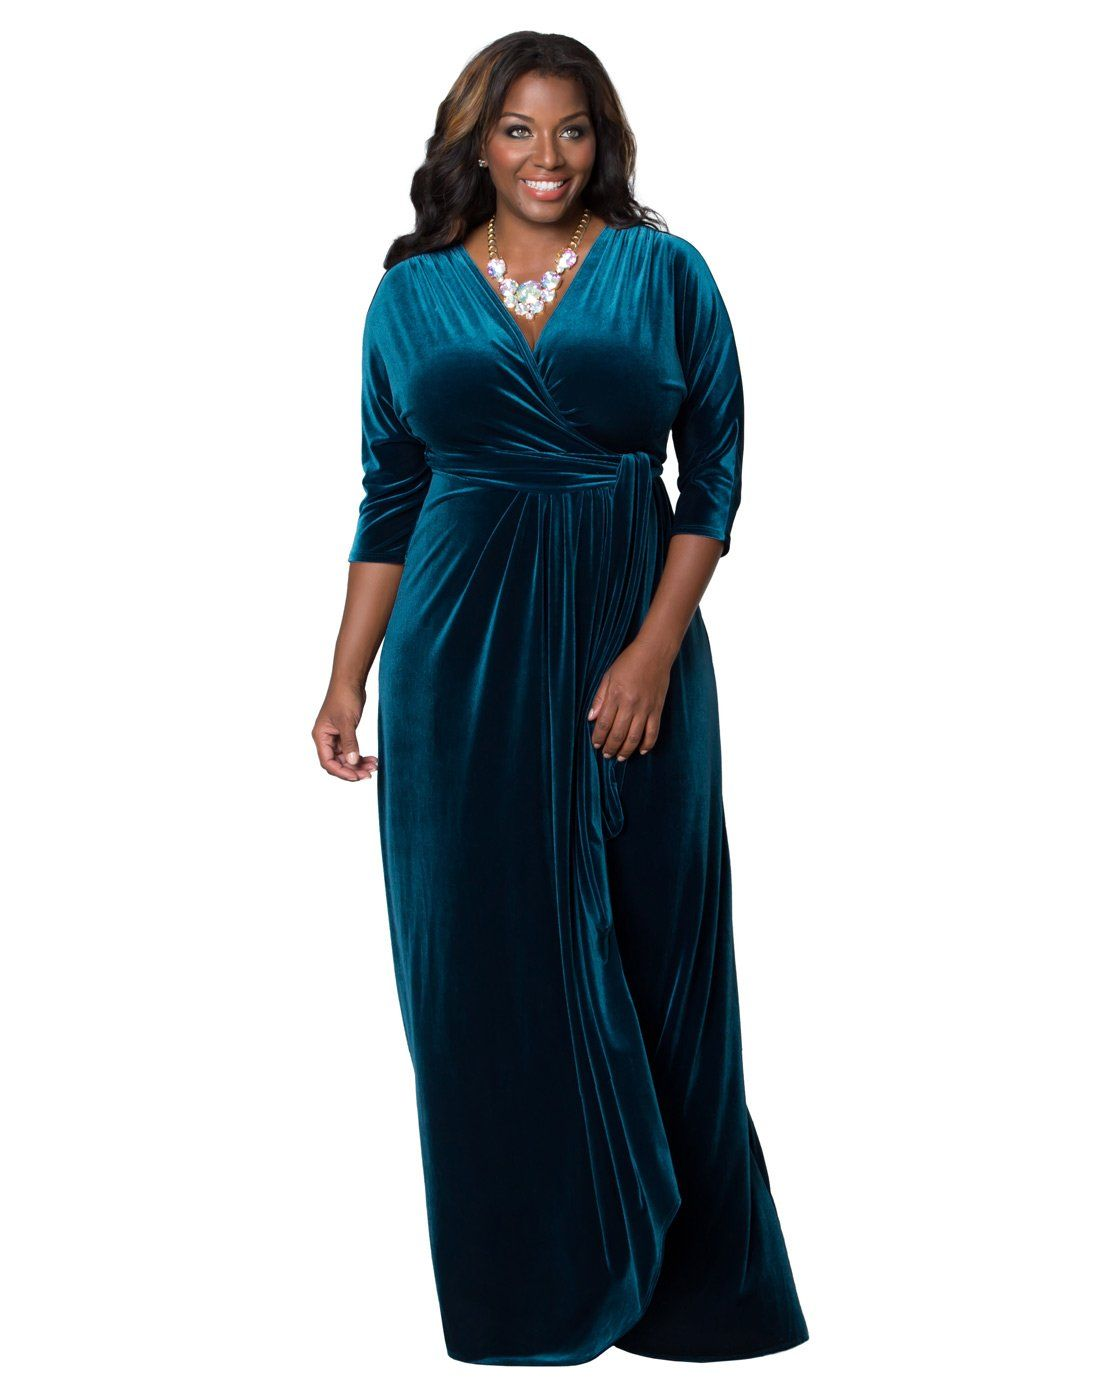 Velvet luxe wrap dress x empress teal dresses for me for the